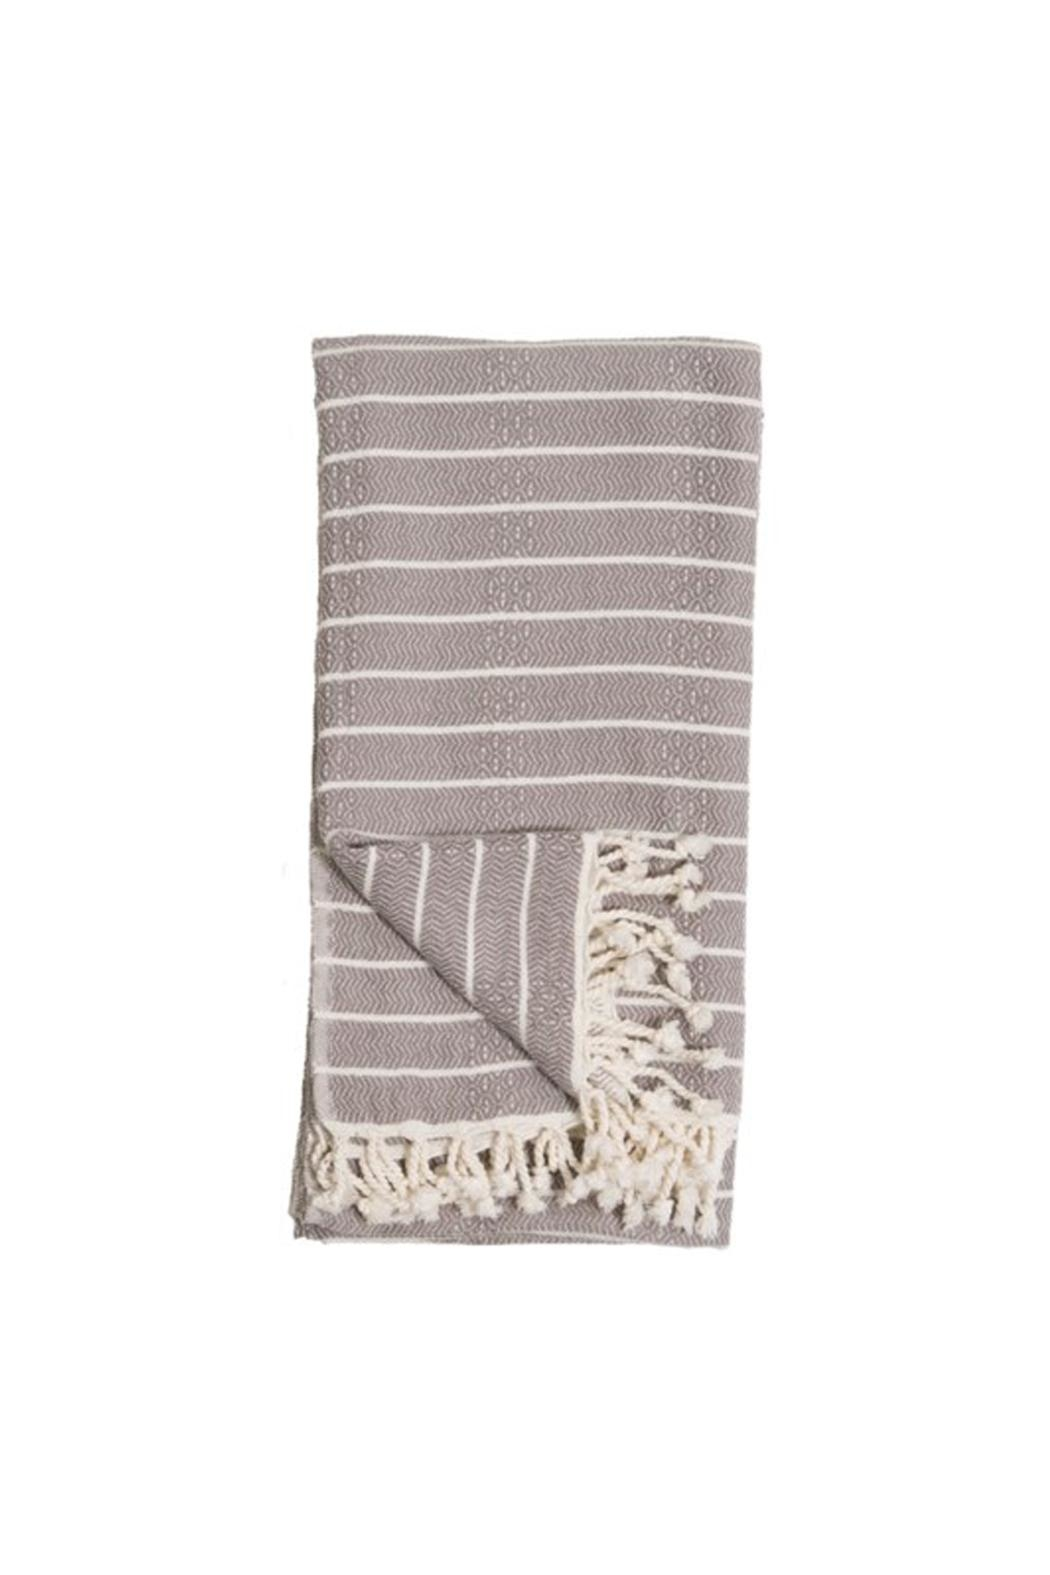 Bamboo Canada Pokoloko Bamboo Striped Body Towel From Canada By Mountain Home